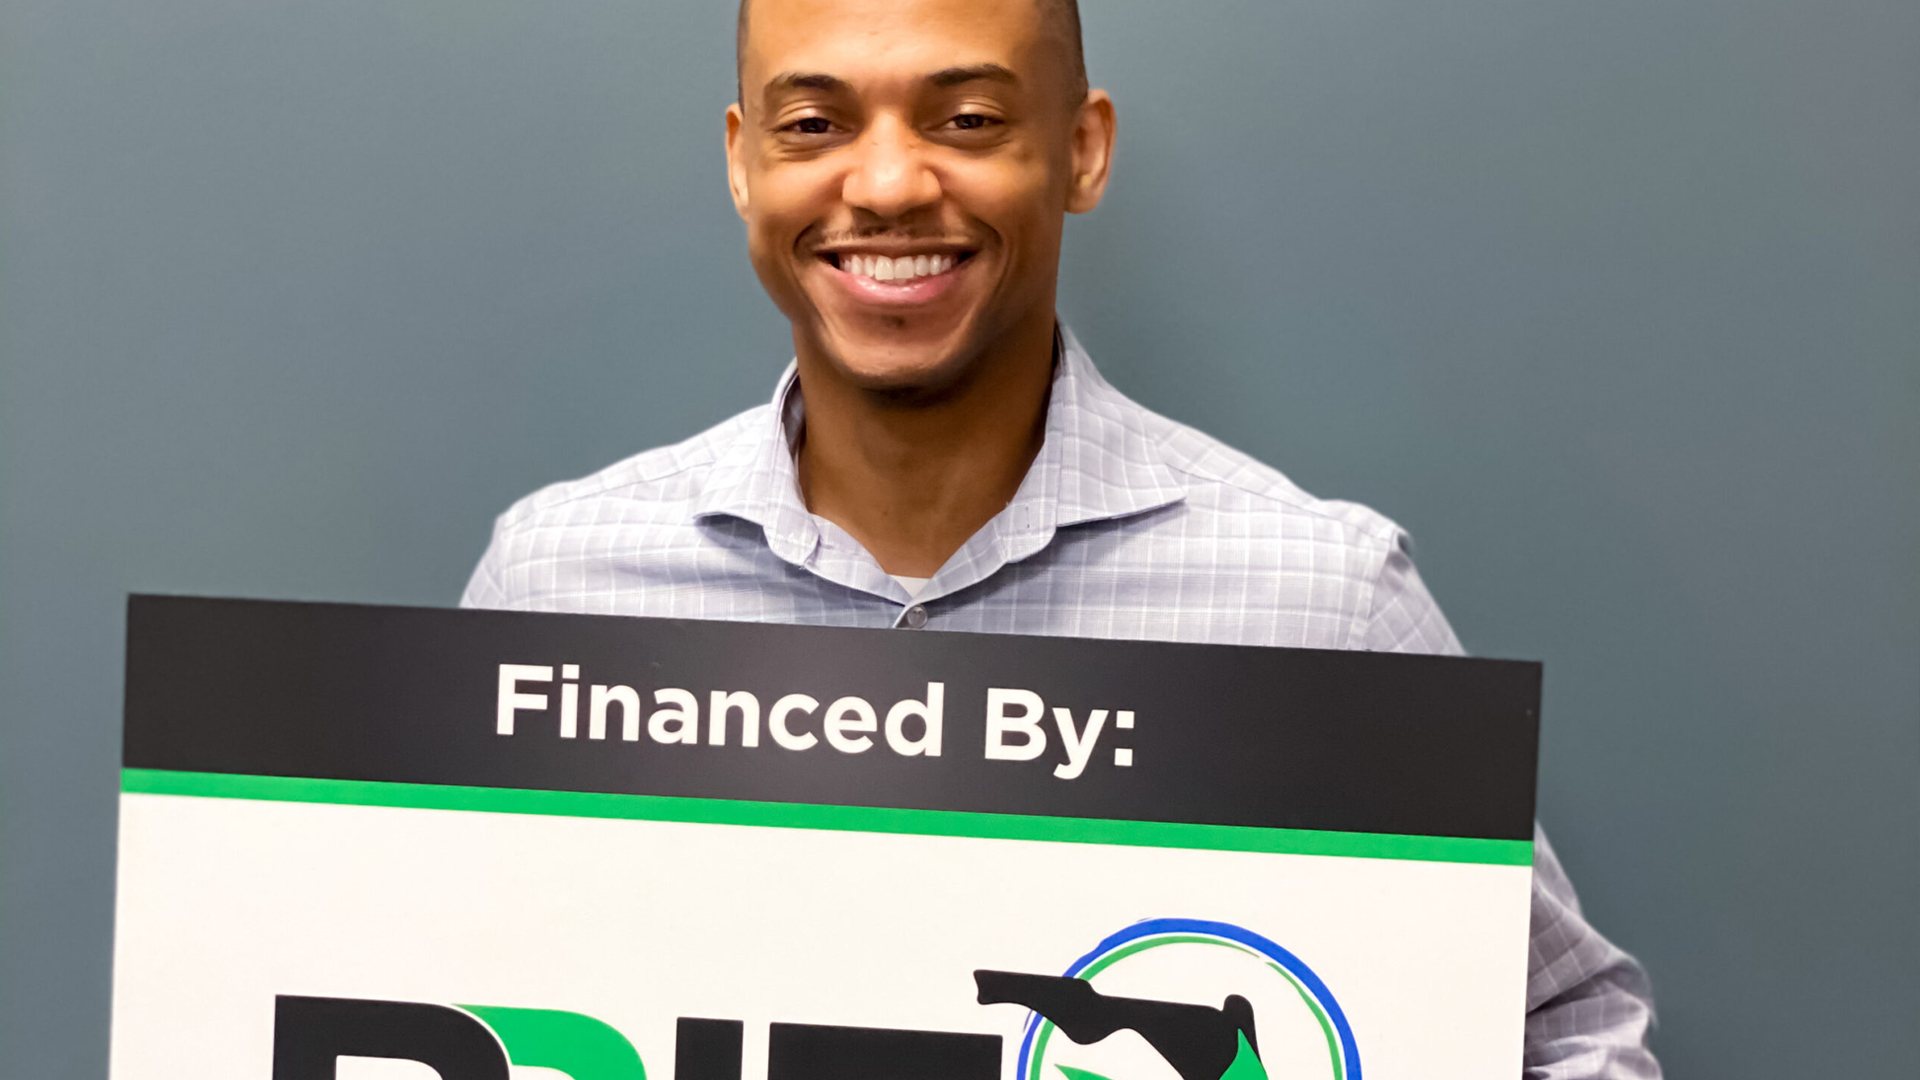 BBIF Client Spotlight: Veteran & Black owned business goes from financially vulnerable to increased revenue & new loan recipient thanks to the BBIF Management Consulting Technical Assistance Program